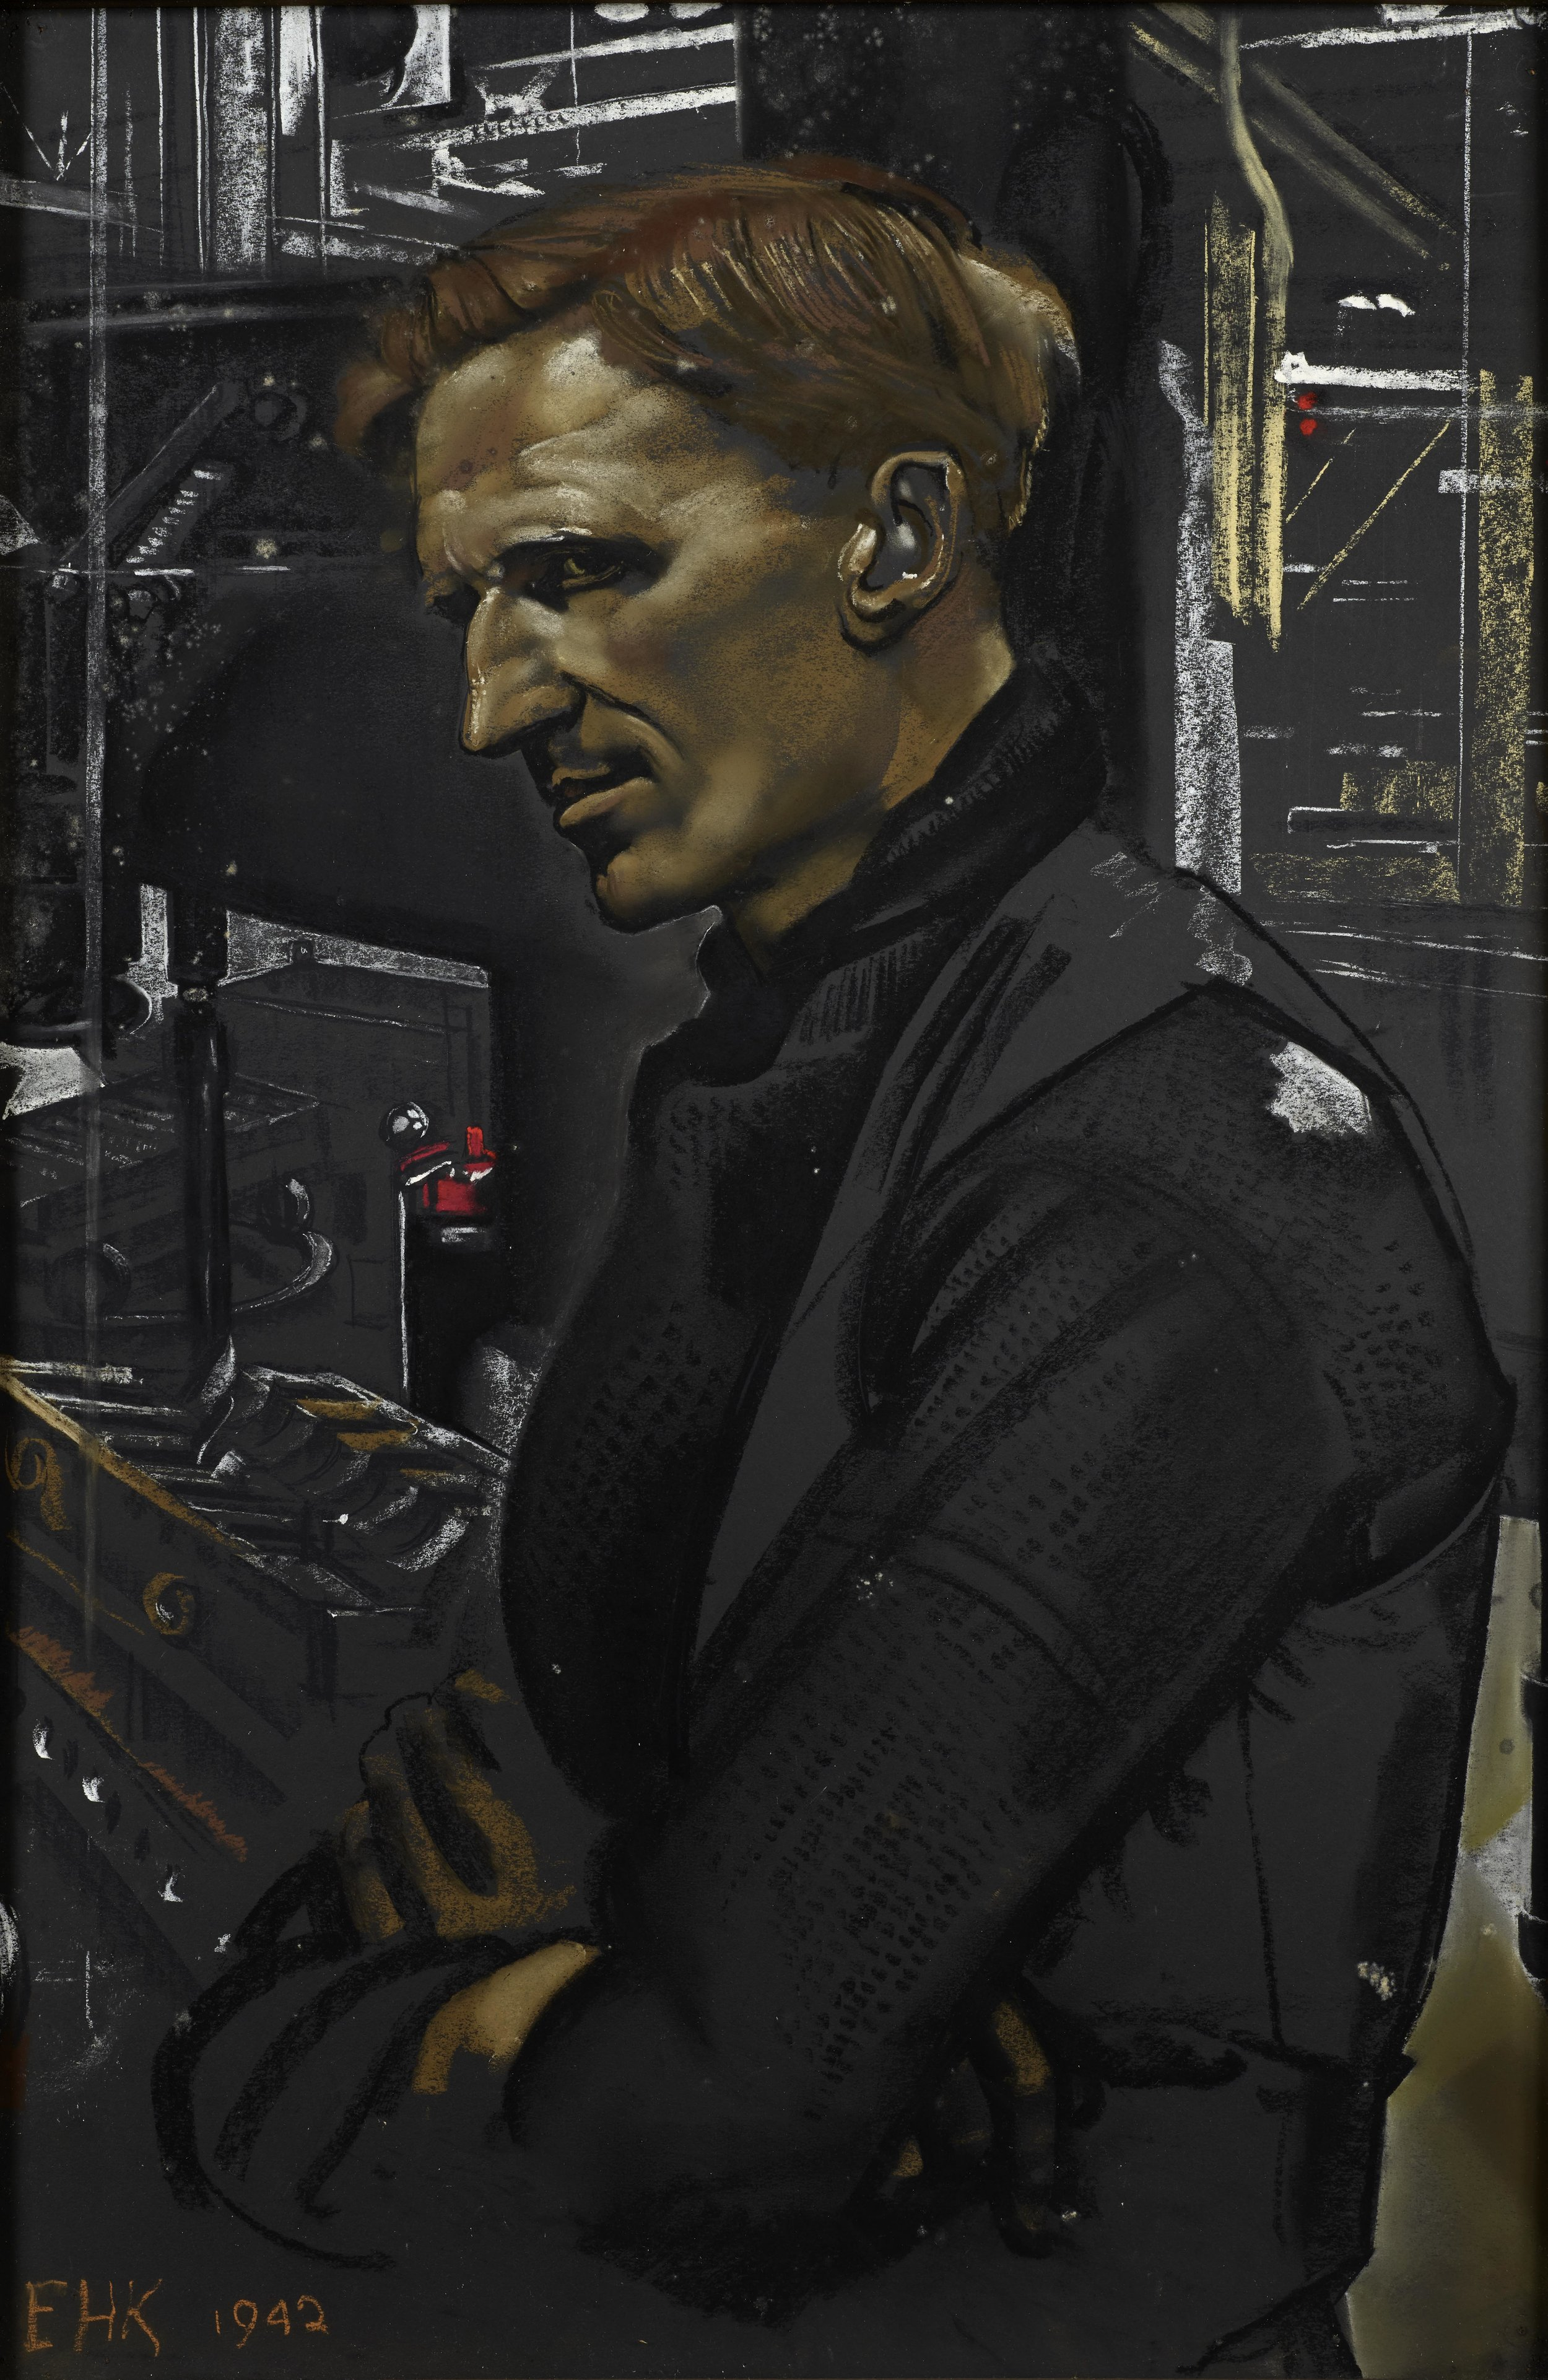 Eric Kennington R.A (1888-1960) ,  Worker in Churchill Tank Factory - Thomas 'Jock' Adair,  Oil on canvas, signed & dated 1942, 76 x 52cm.